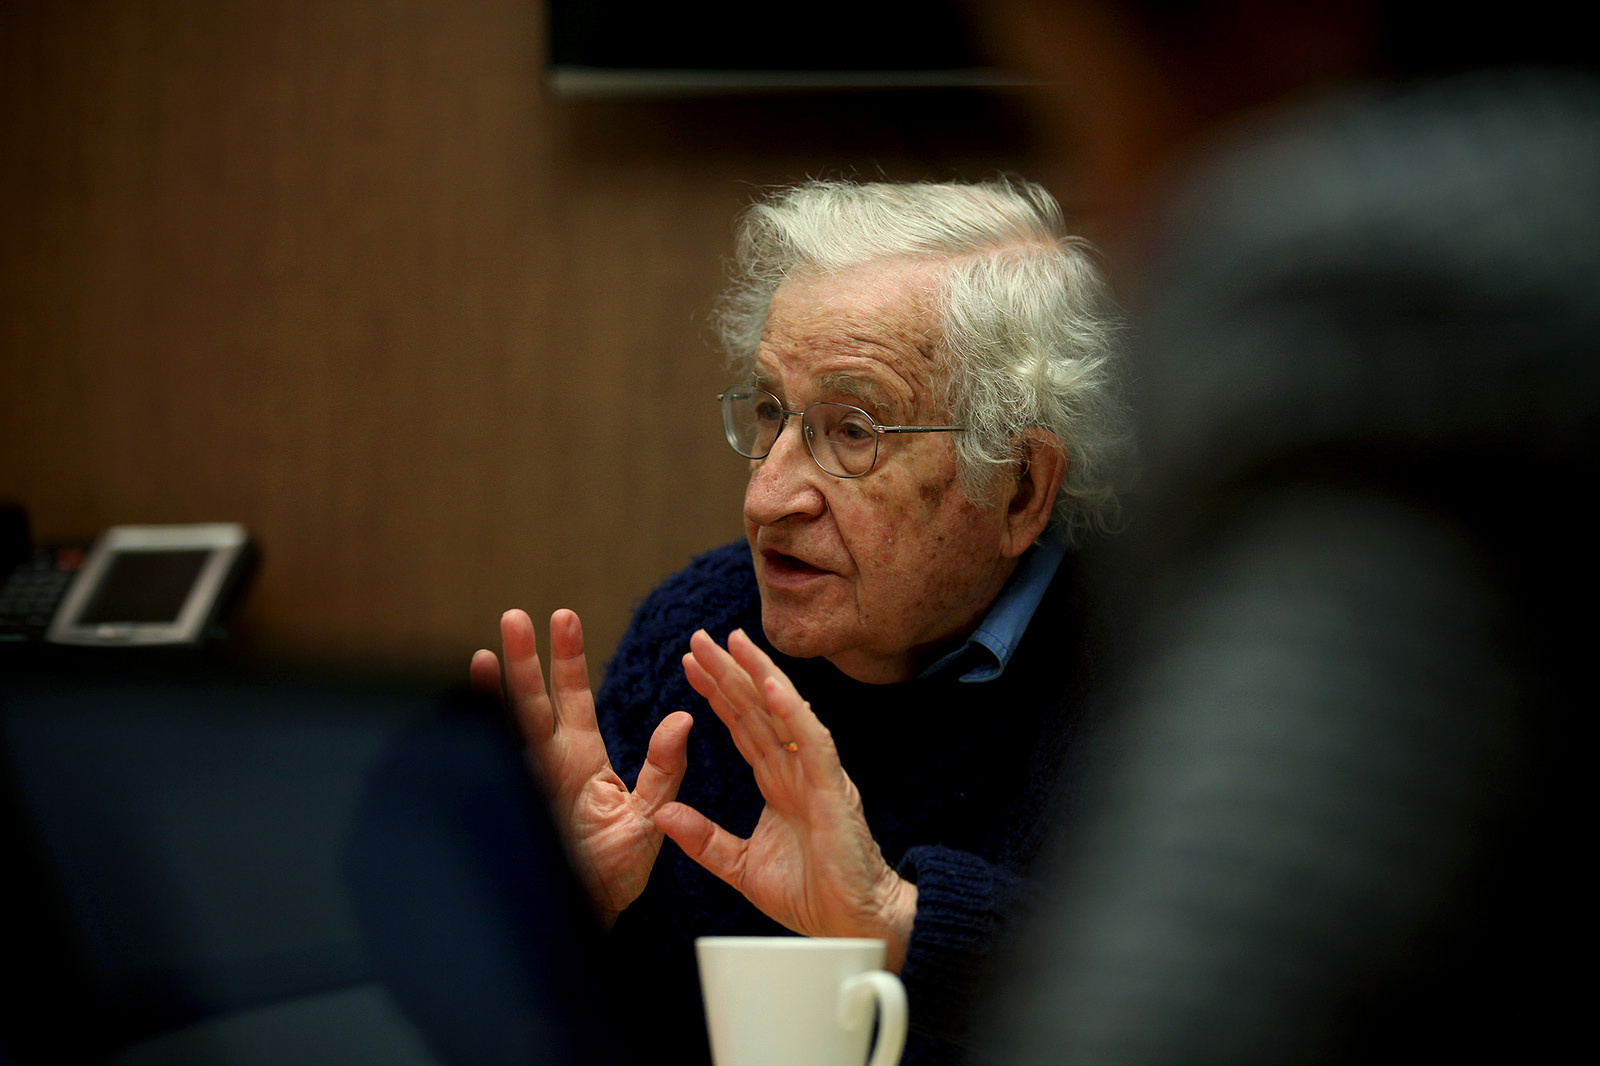 MIT professor Noam Chomsky, amazingly, has weighed into this very public dispute.